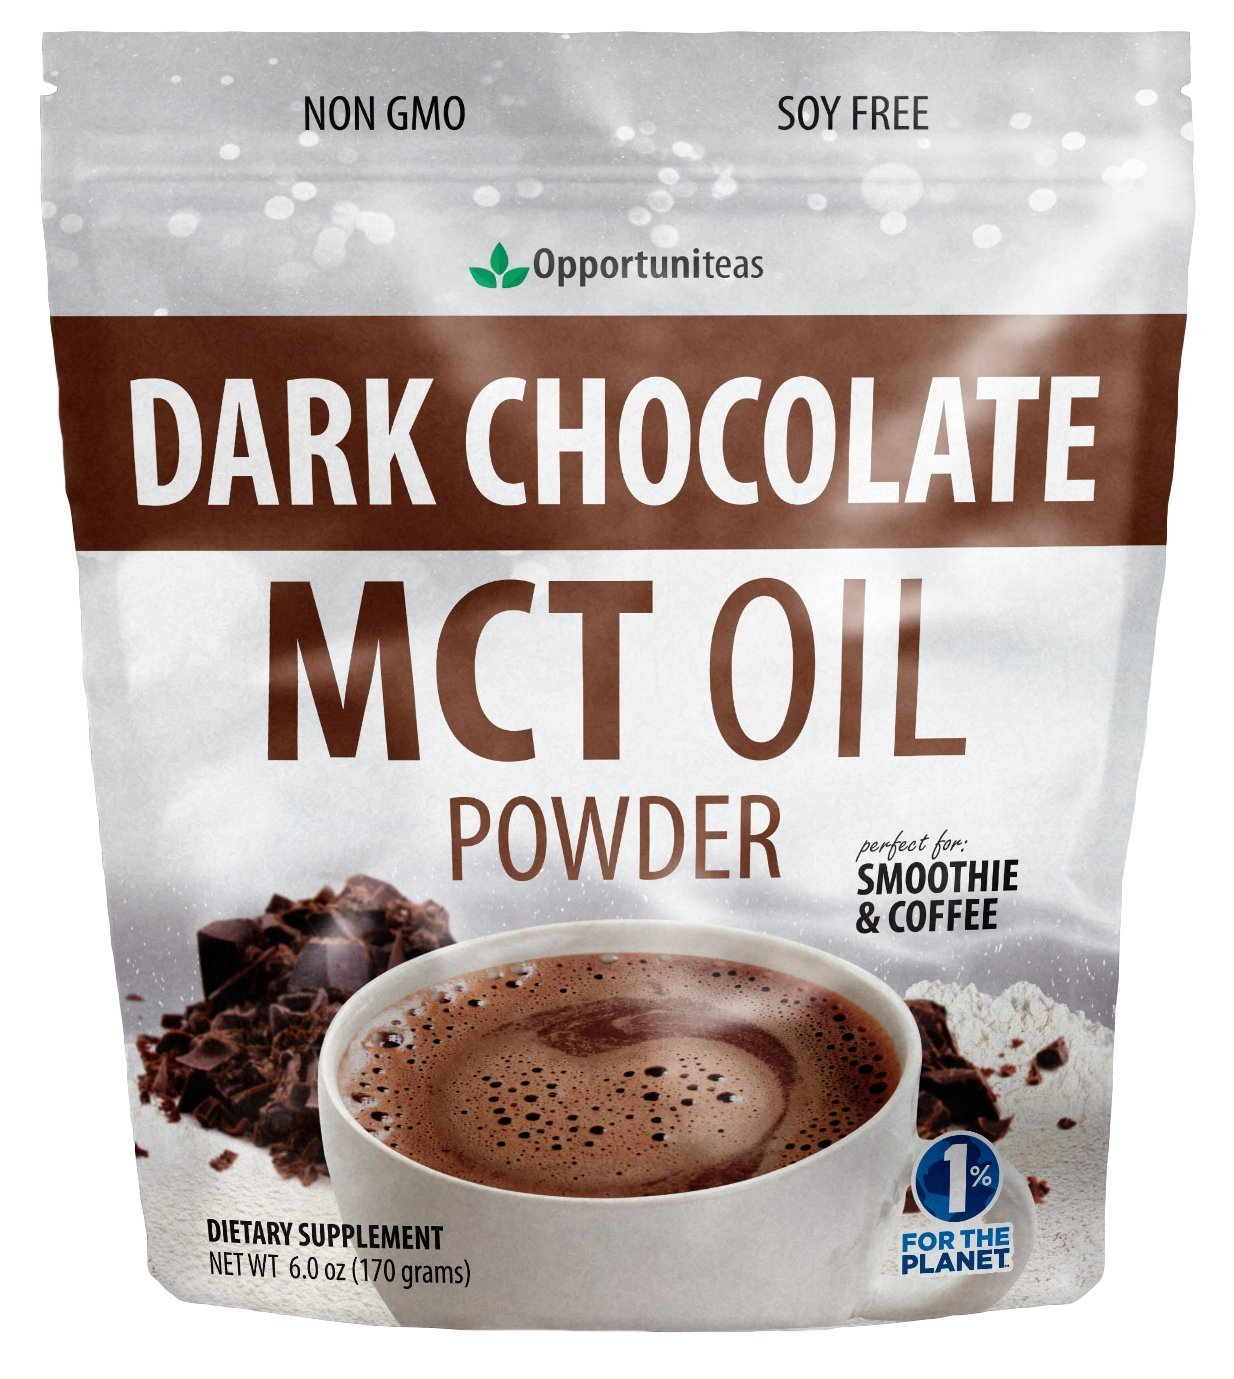 Dark Chocolate MCT Oil Powder - Sugar Free Hot Chocolate Mix - Perfect Low Carb Keto, Ketogenic Cocoa Supplement for Energy & Mood Support - Mix in Coffee, Tea, Drinks, Smoothies, Recipes - 6 oz by Opportuniteas